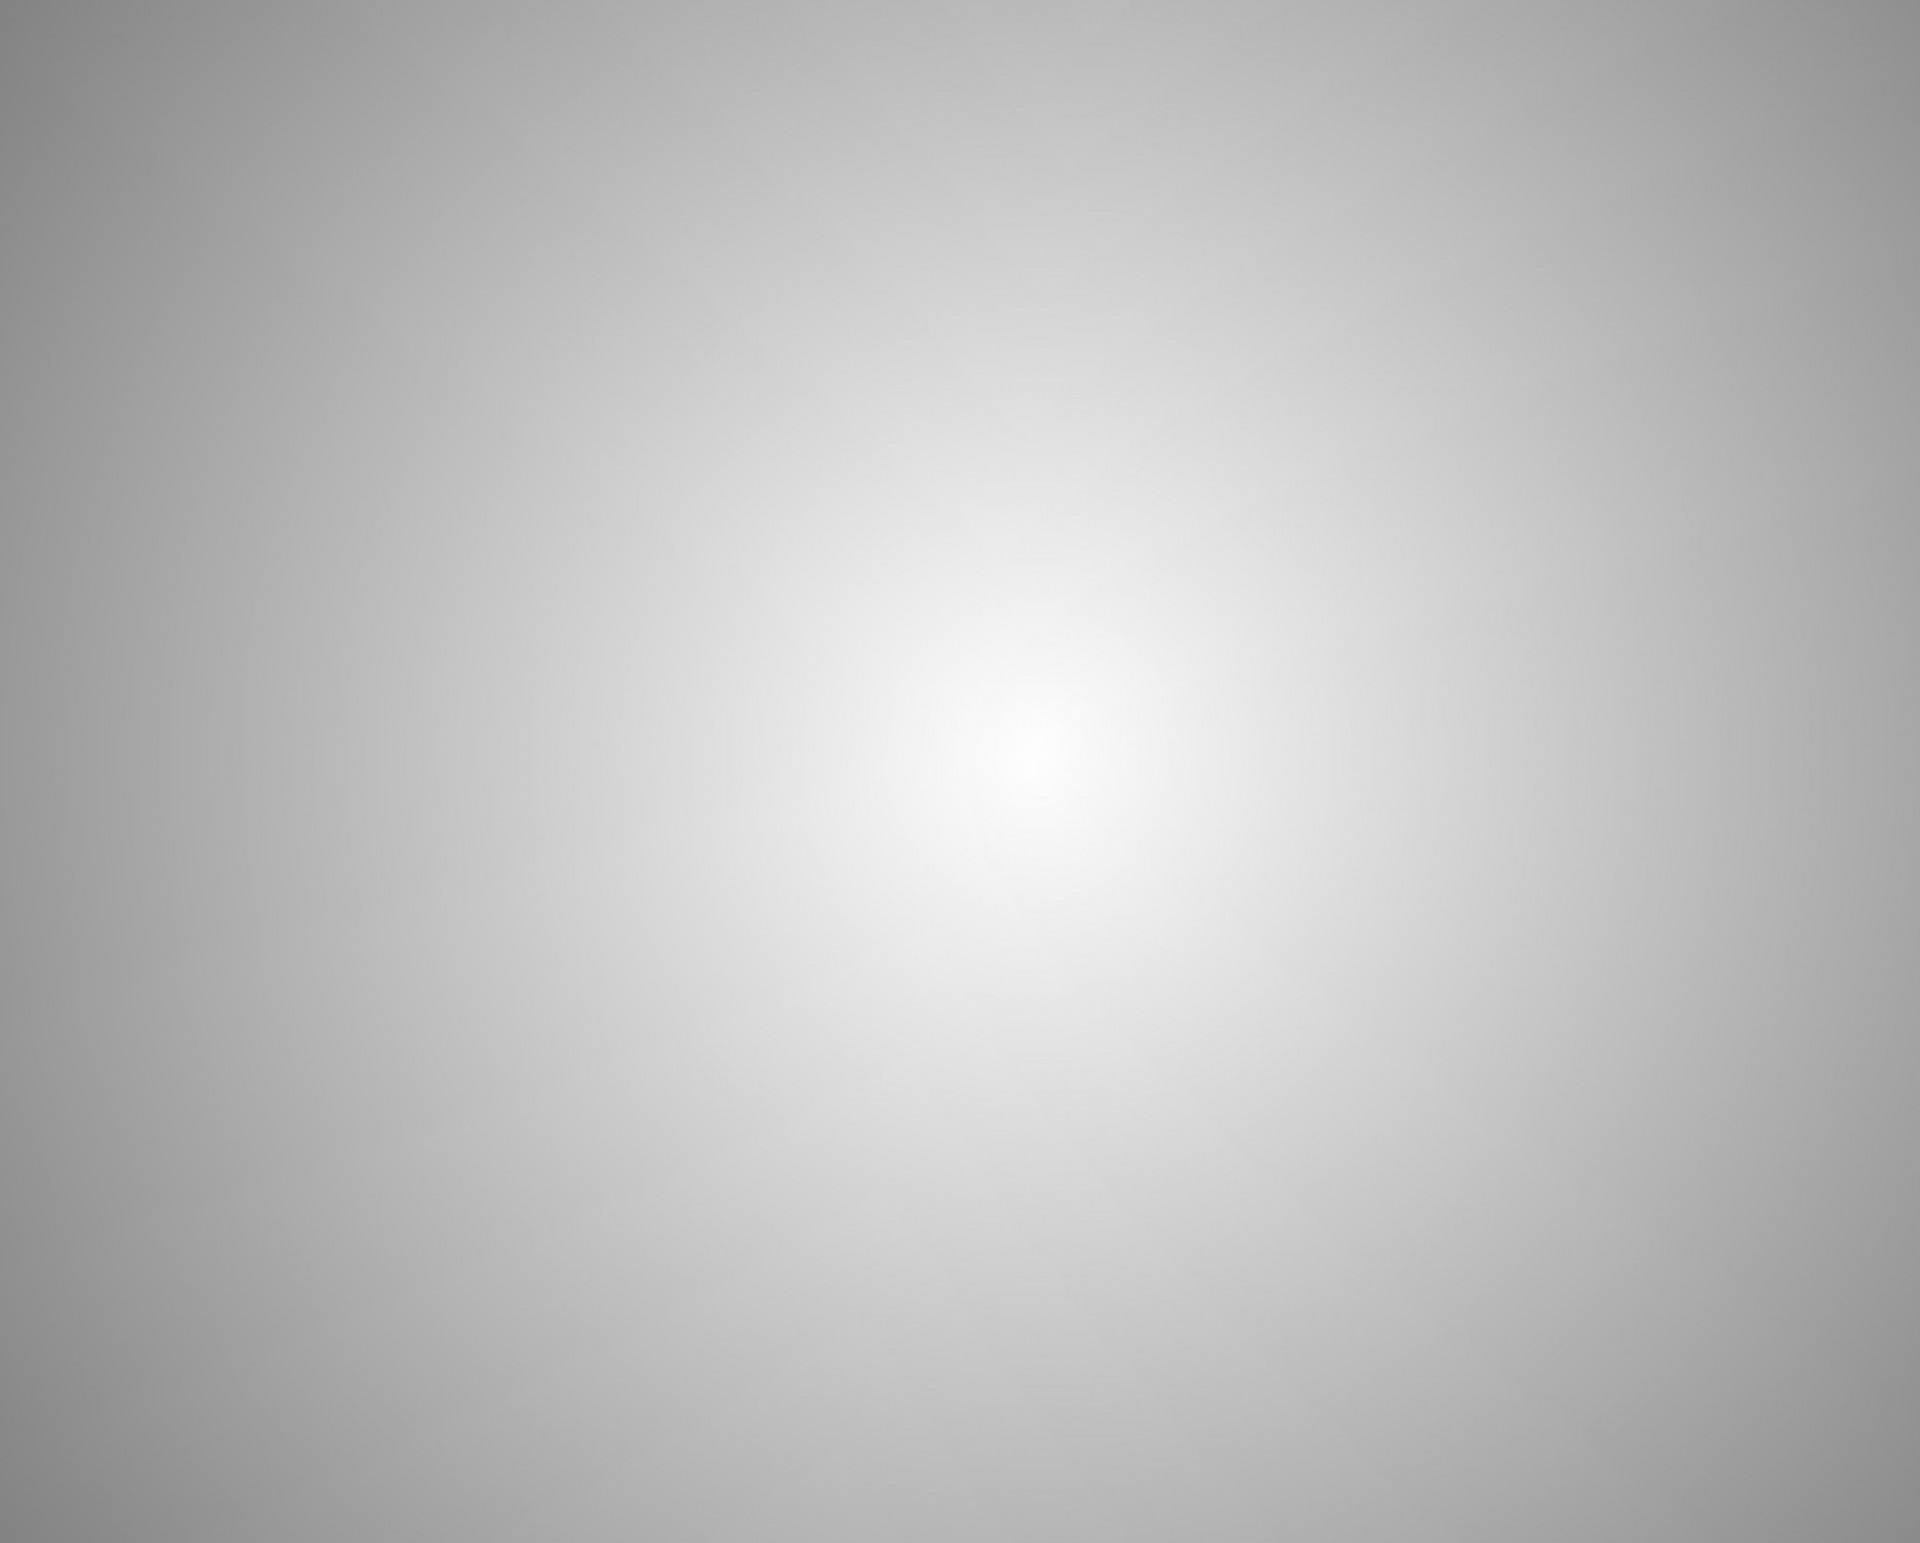 background Gradient ·① Download free High Resolution backgrounds ...